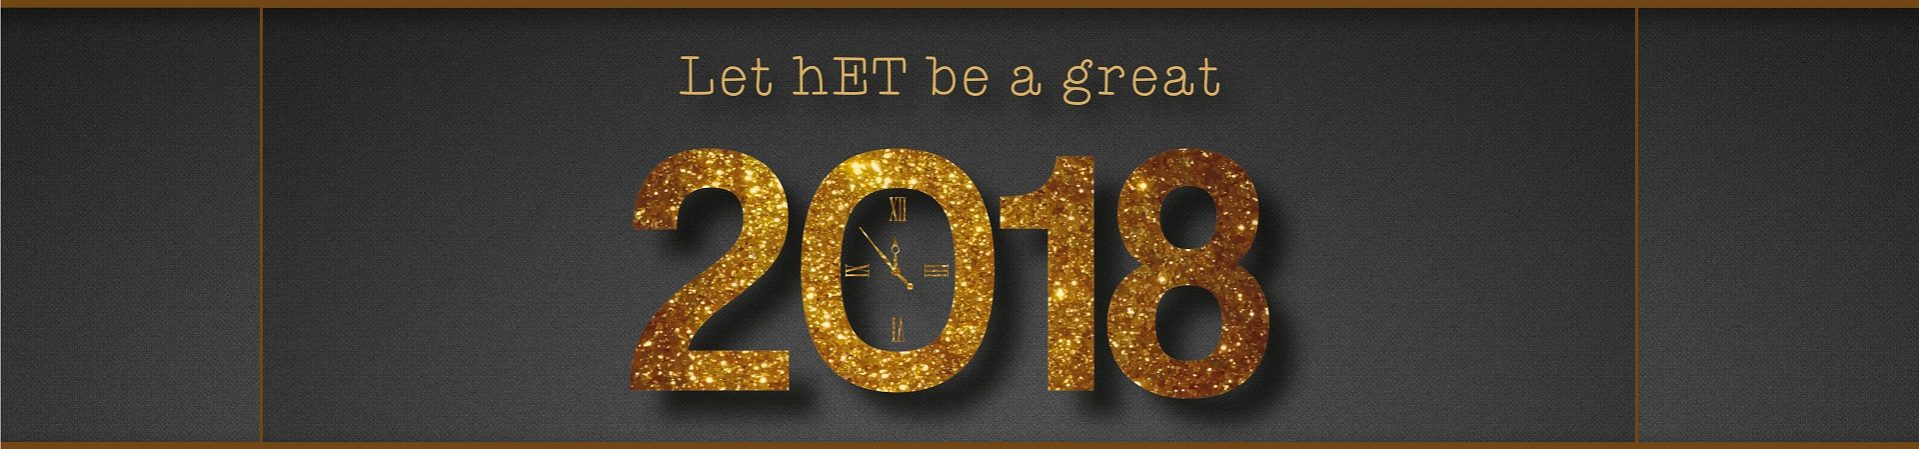 Let hET be a great 2018 1920x450